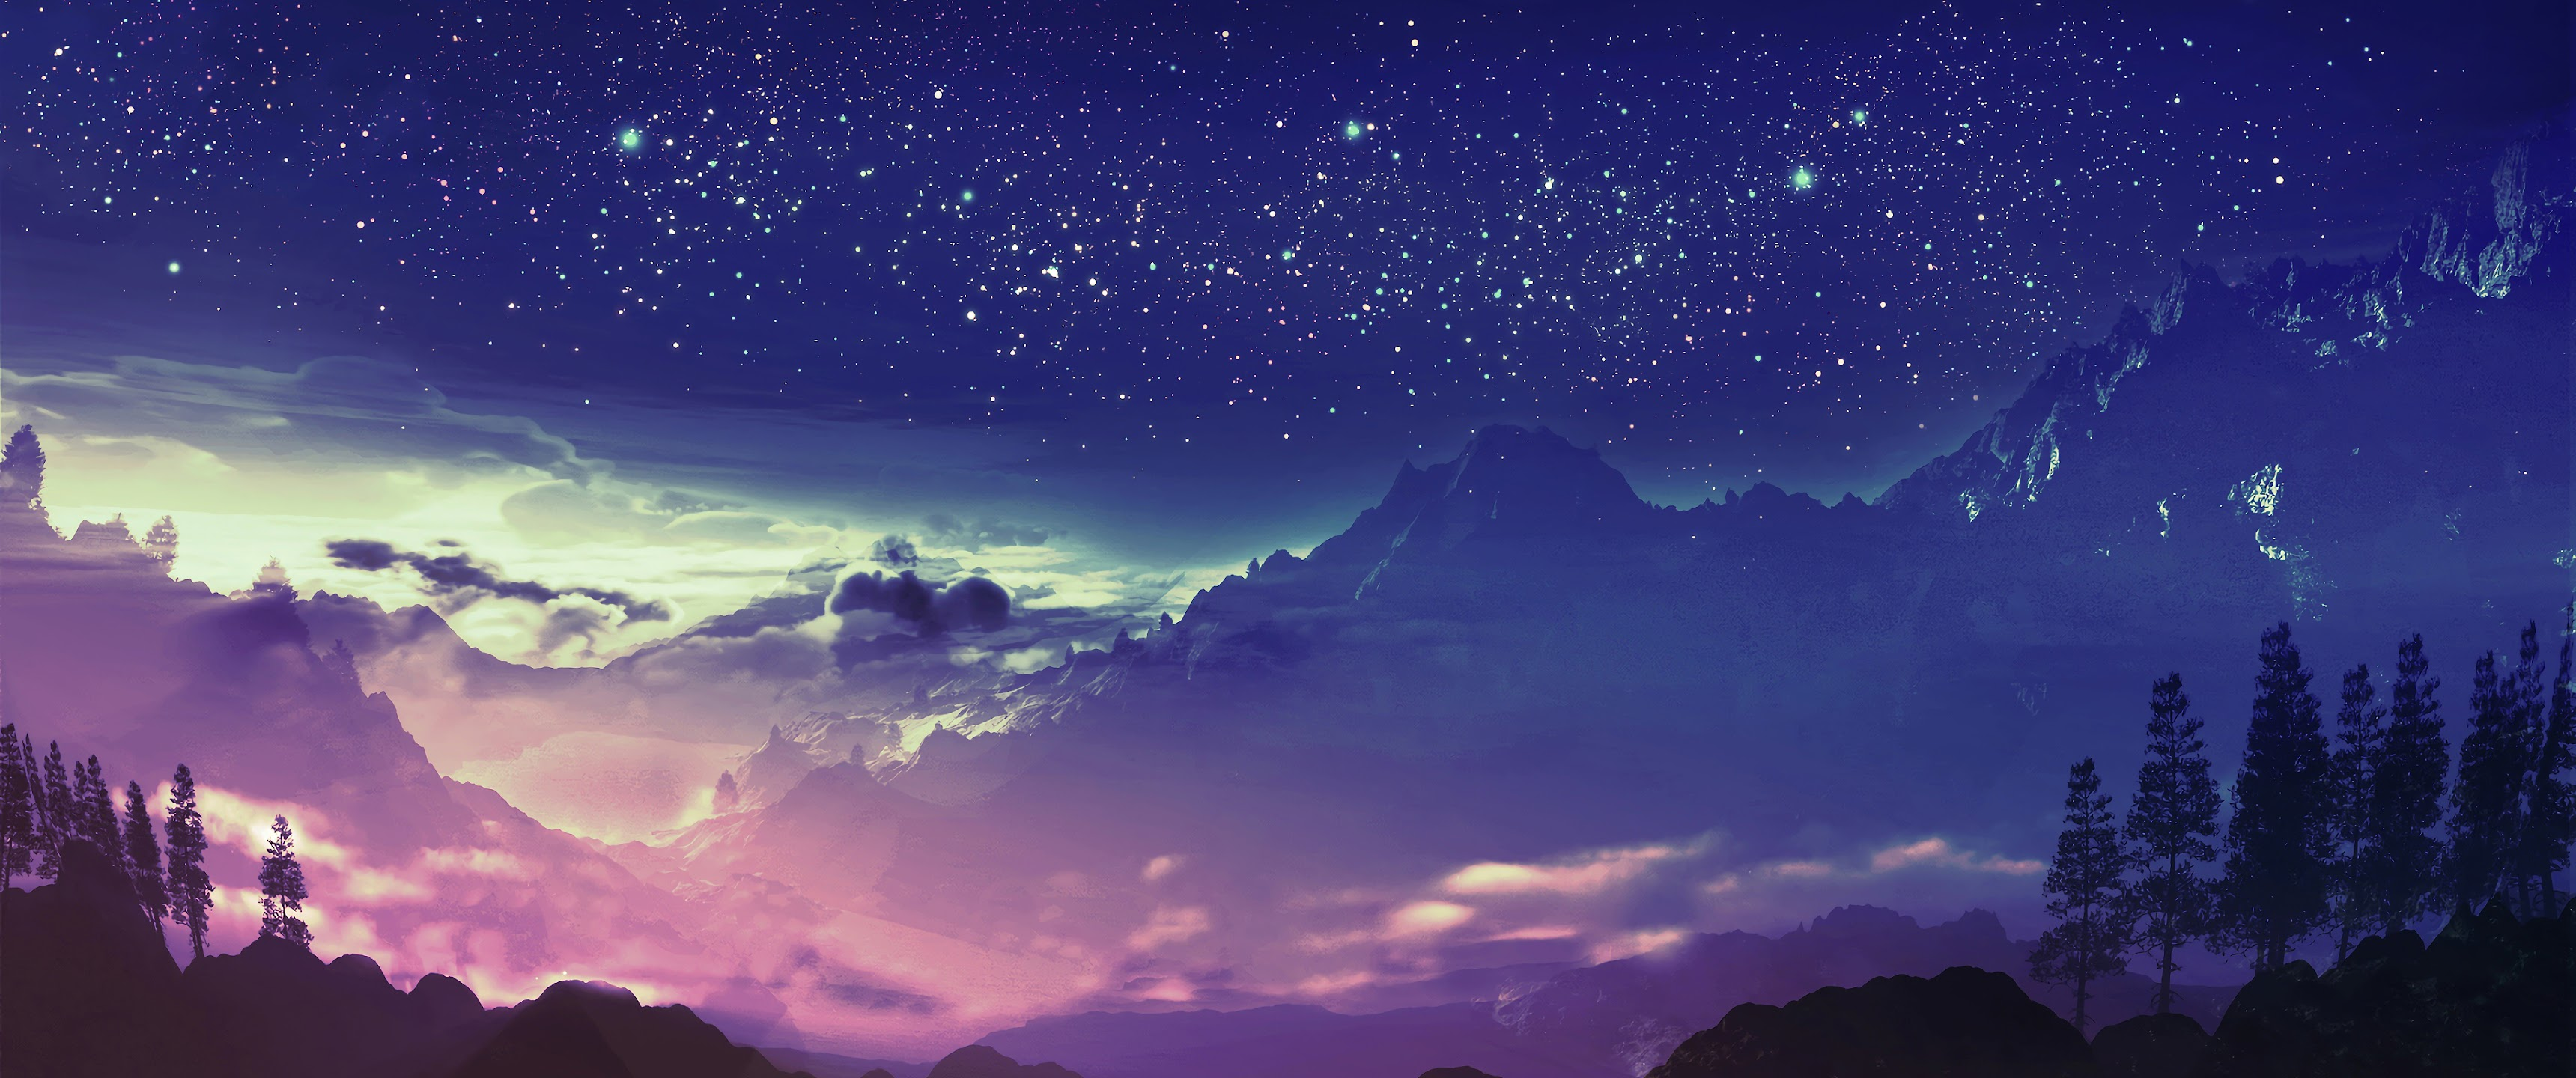 Mountain Night Scenery Stars Landscape Anime 4k Wallpaper 84